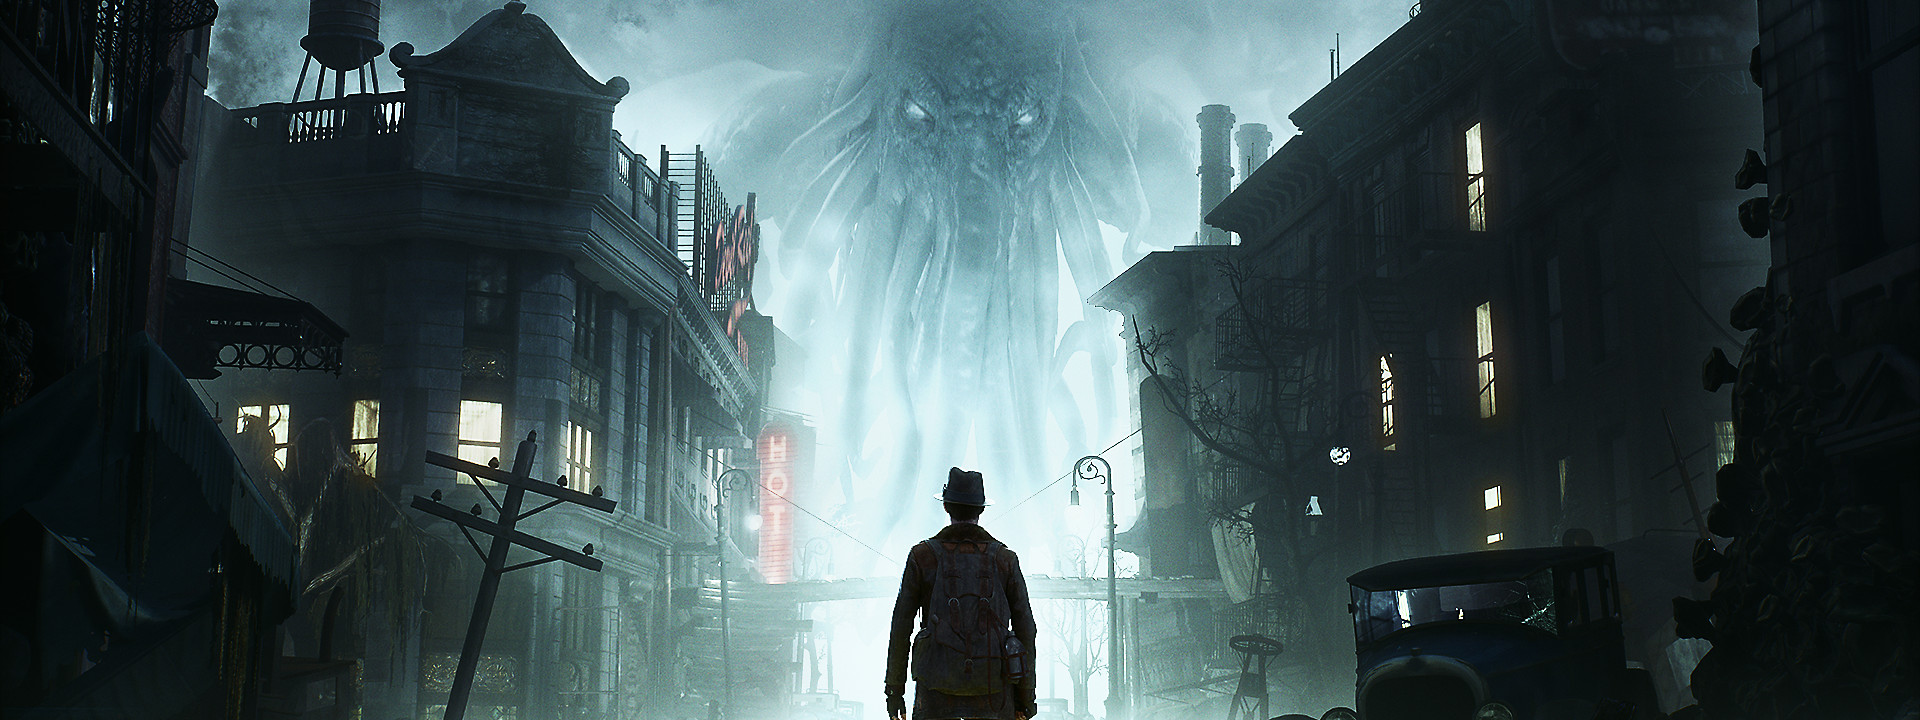 Fondo con el héroe de The Sinking City